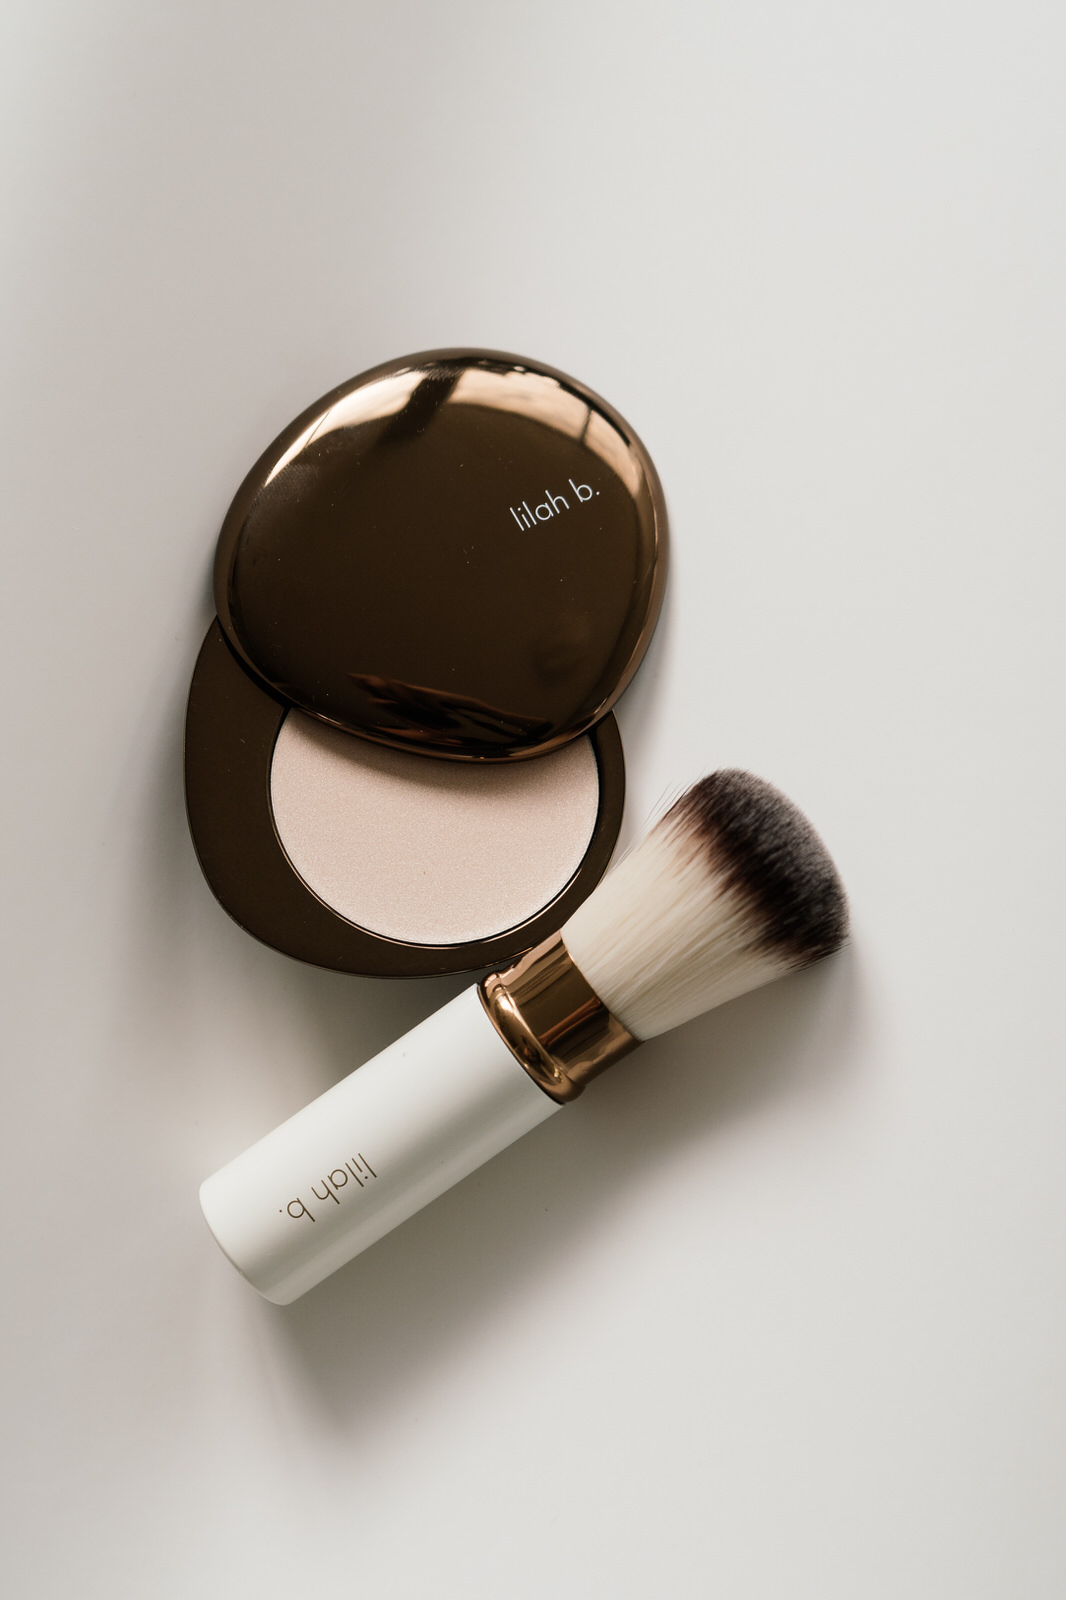 Vegan makeup - Lilah B is now available exclusively at MECCA